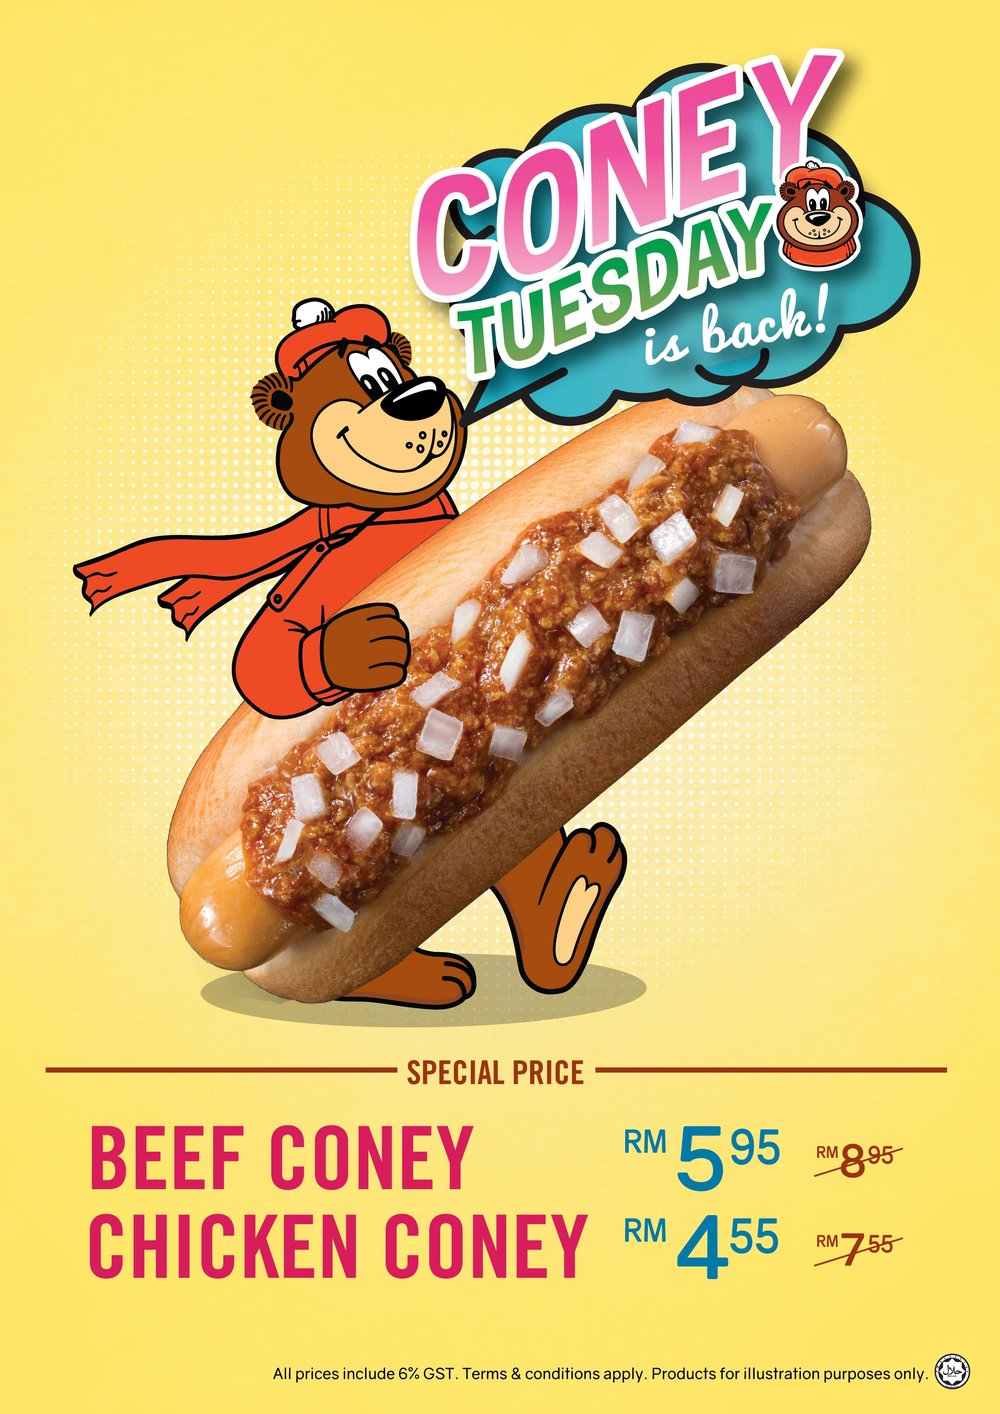 Coney Tuesday - Buy Coney Chicken/Beef with a special price every Tuesday!